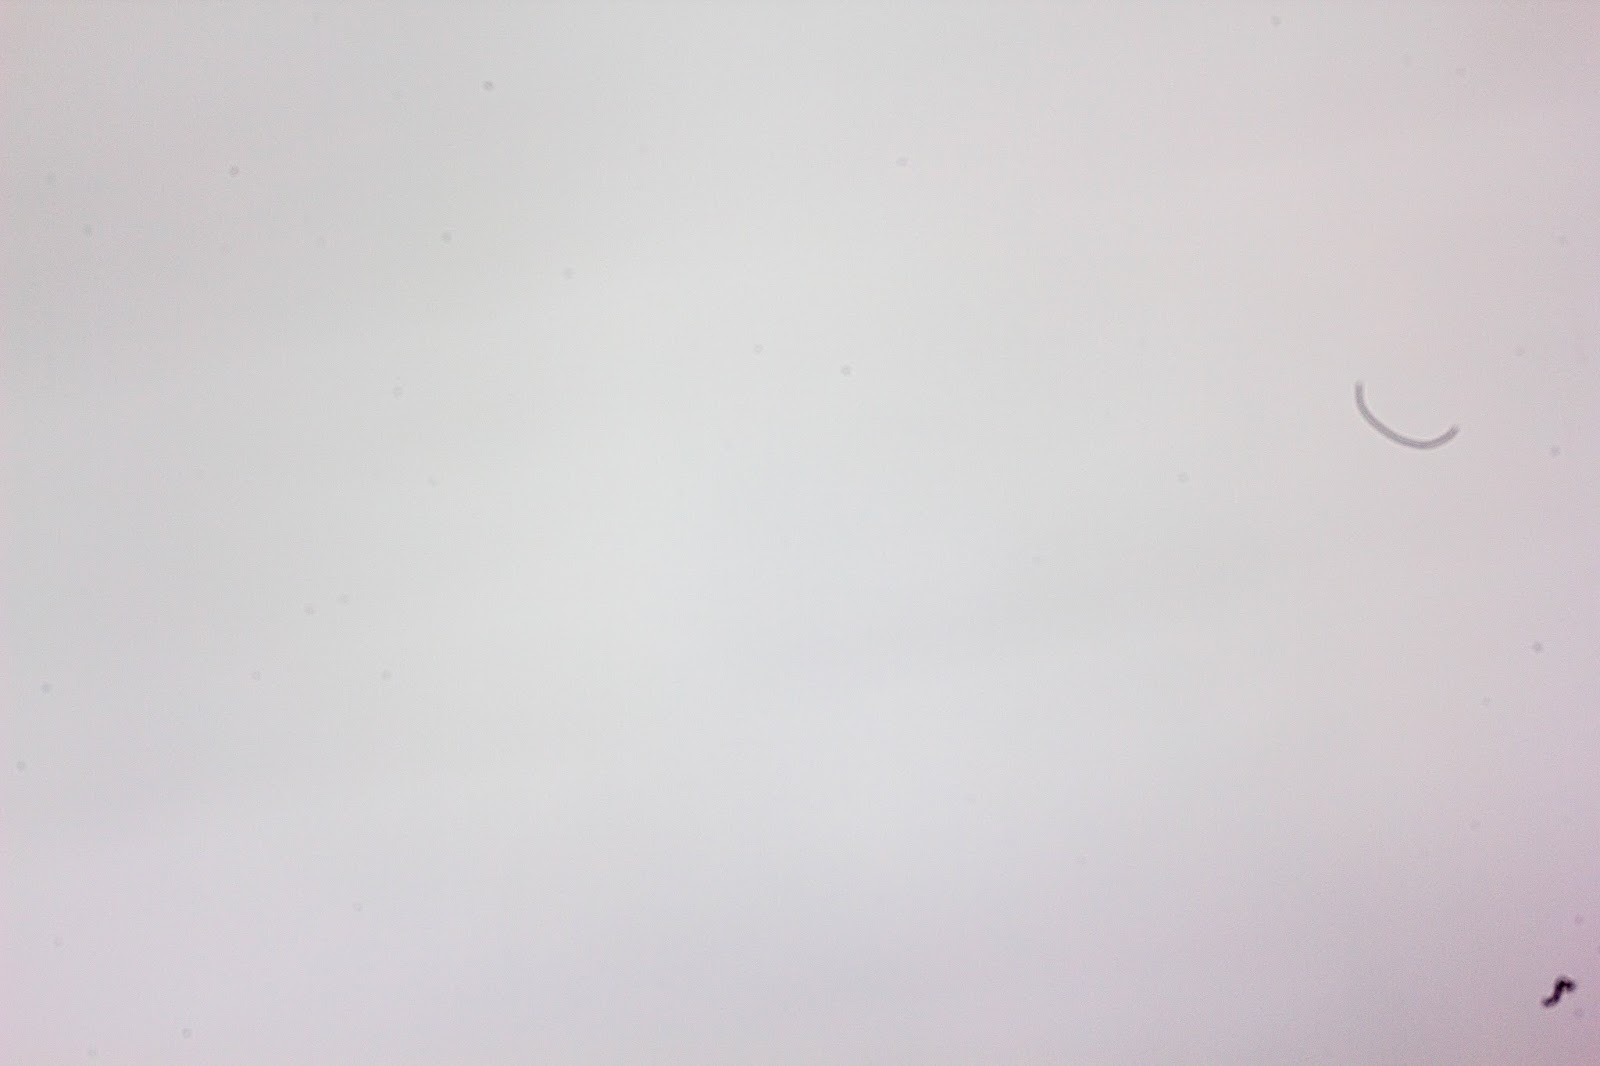 Sample picture which shows dust particle on camera sensor